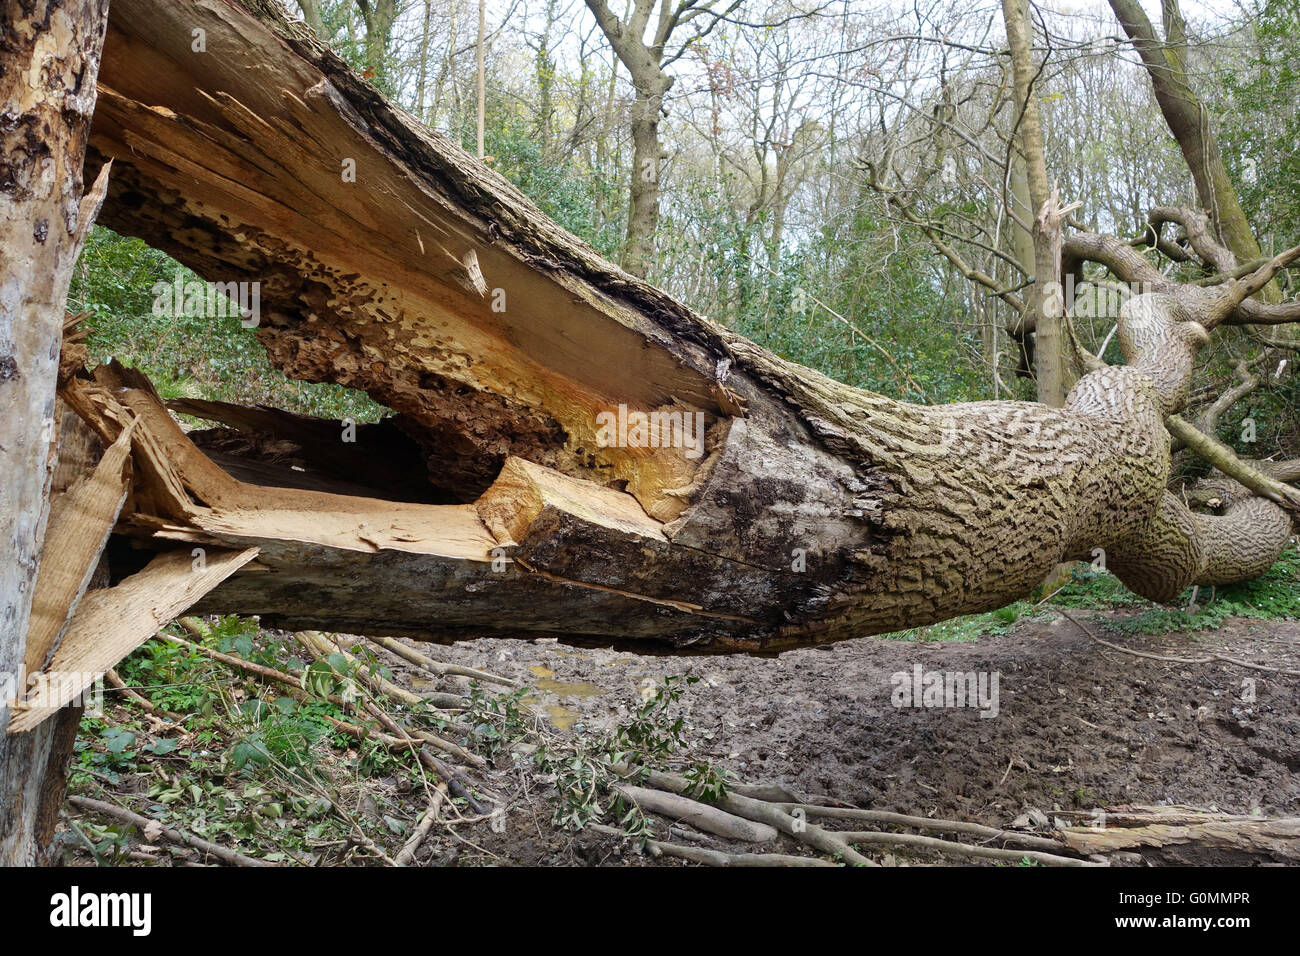 Fallen diseased Ash Tree in Shropshire Woodland England Uk Stock Photo